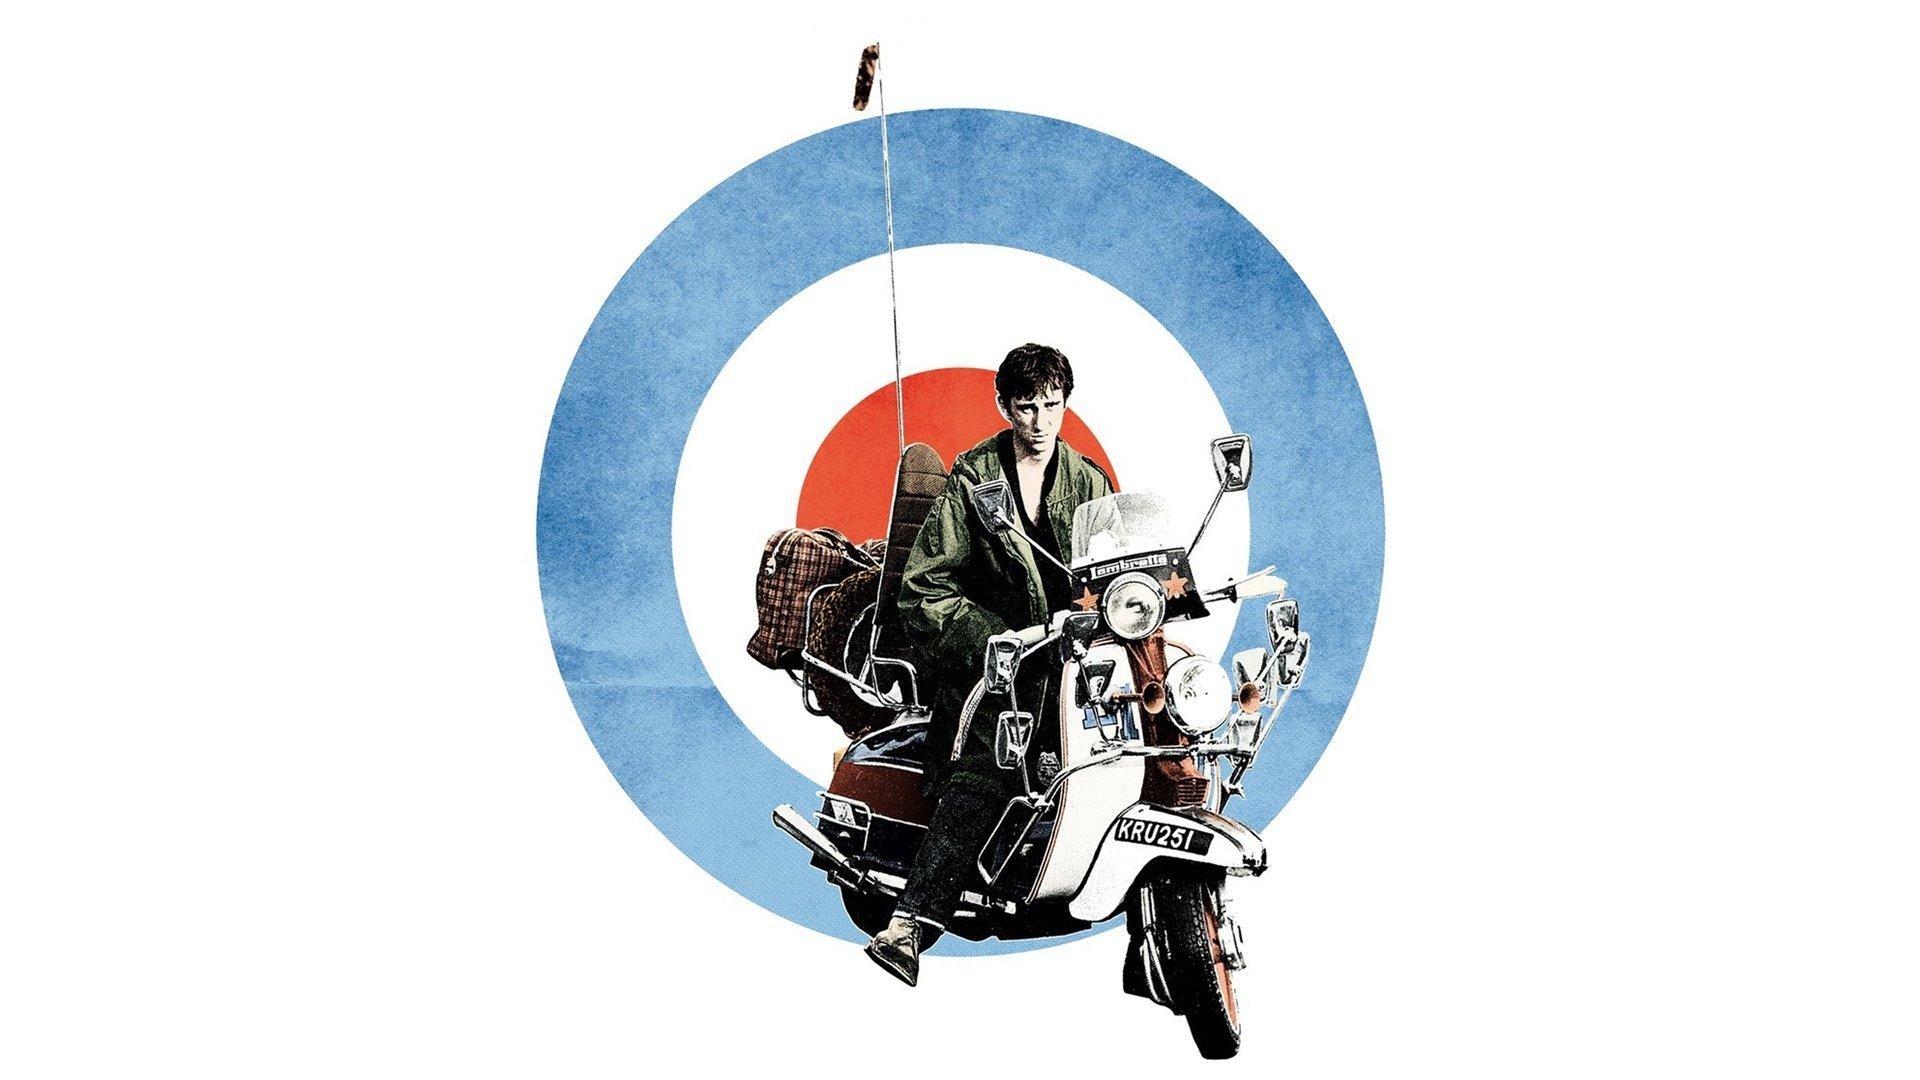 Quadrophenia Full Hd Wallpaper And Background | 1920X1080 | Id:810046 intended for Quadrophenia Wall Art